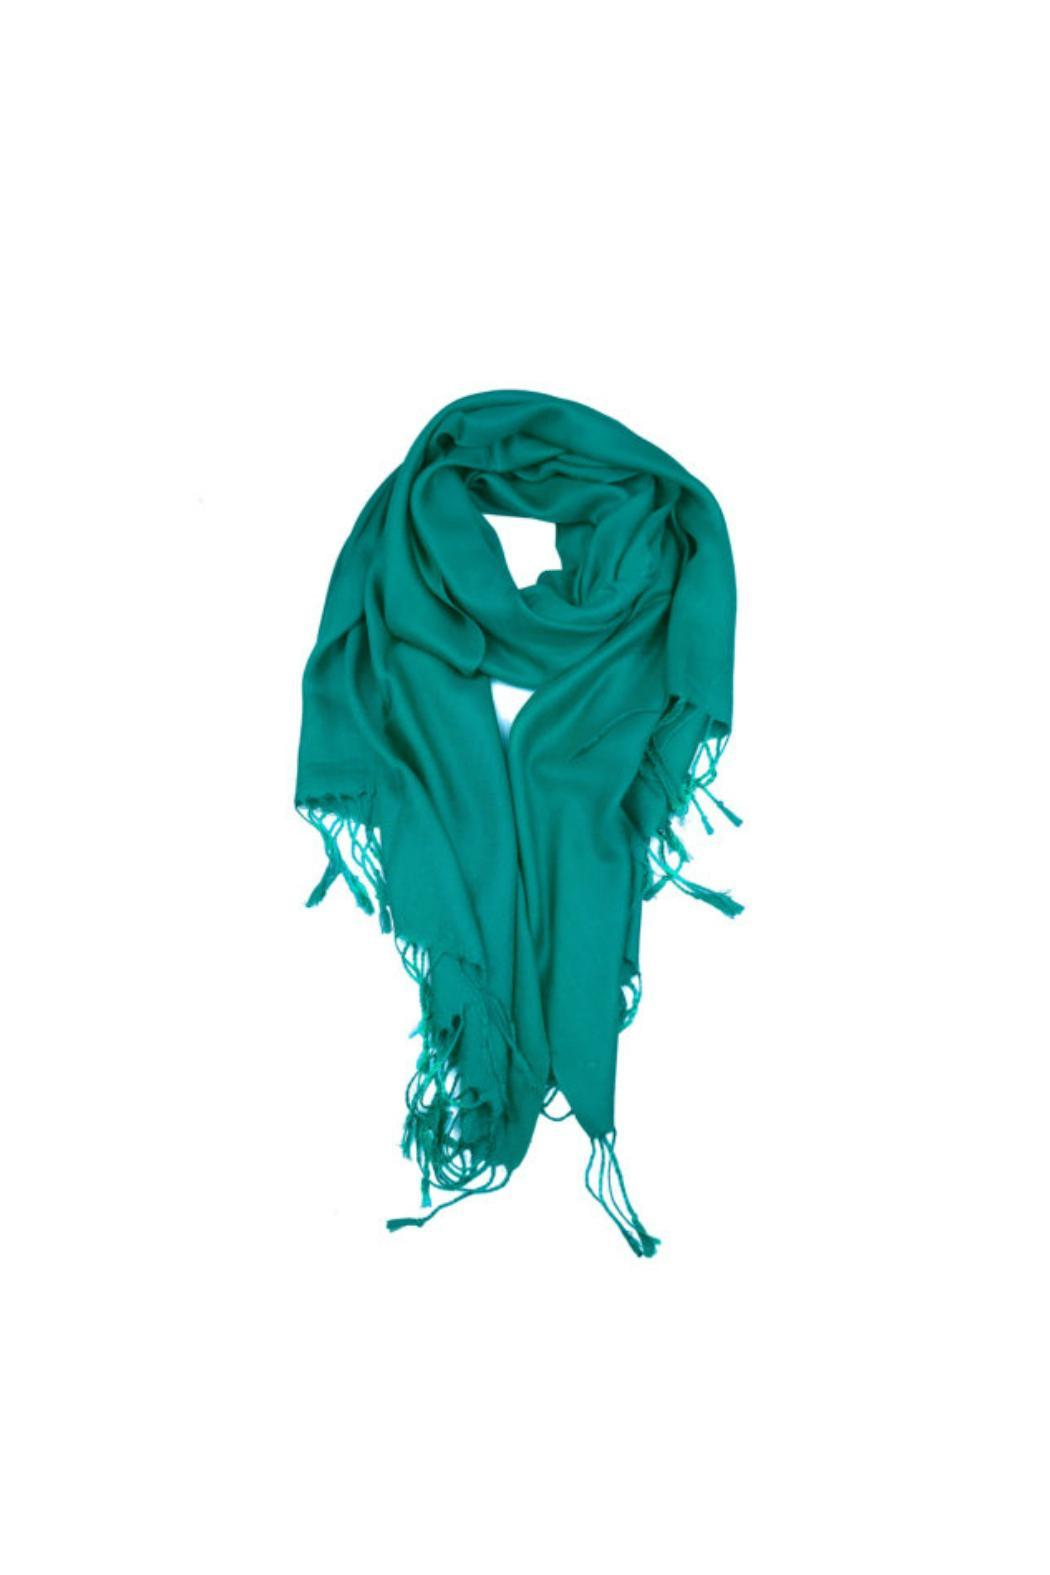 6th Borough Boutique Teal Pashmina Scarf - Main Image